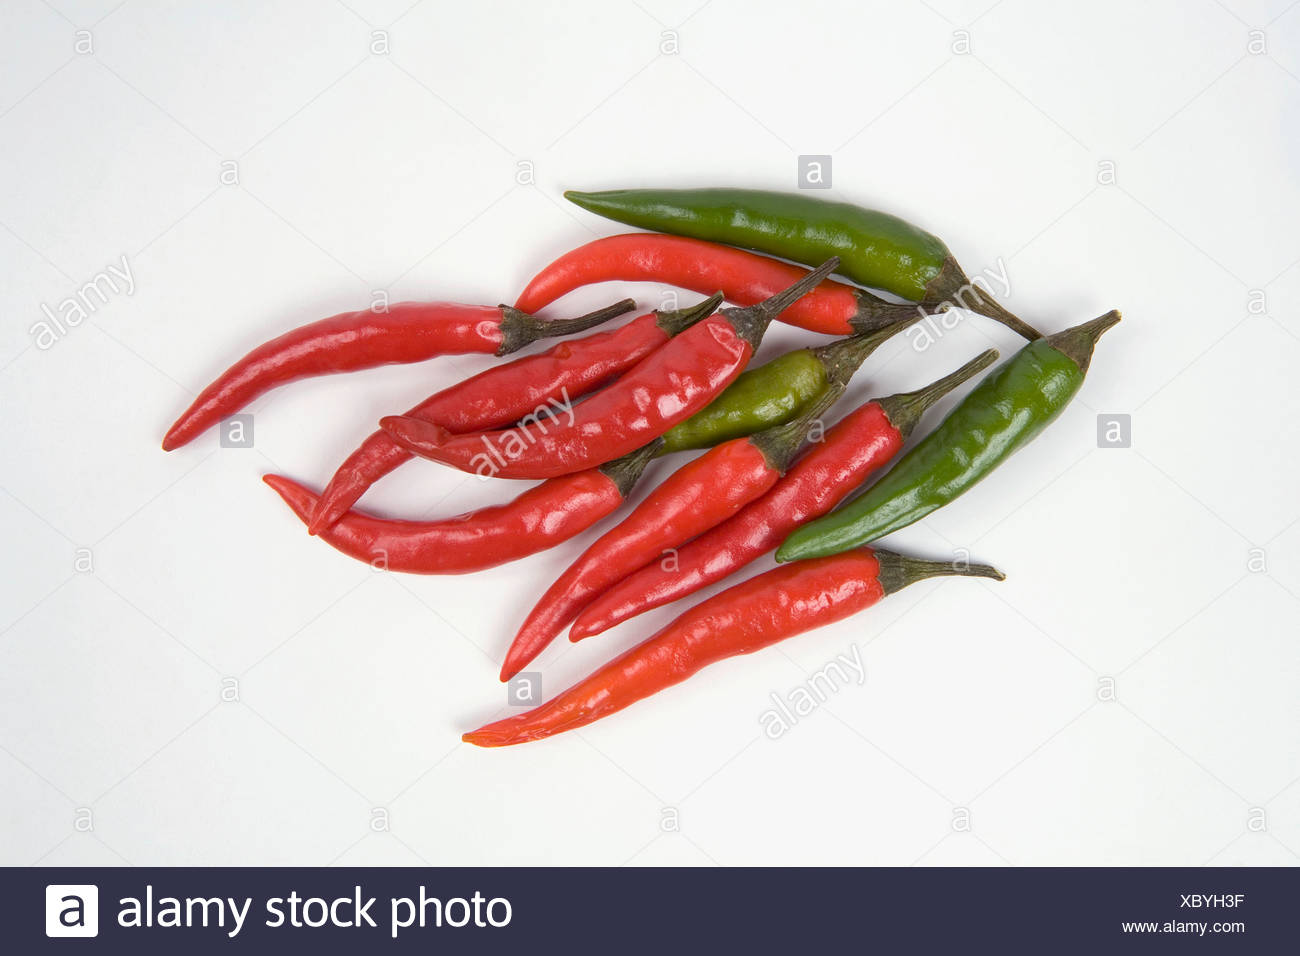 Close-up of Thai chilli peppers - Stock Image